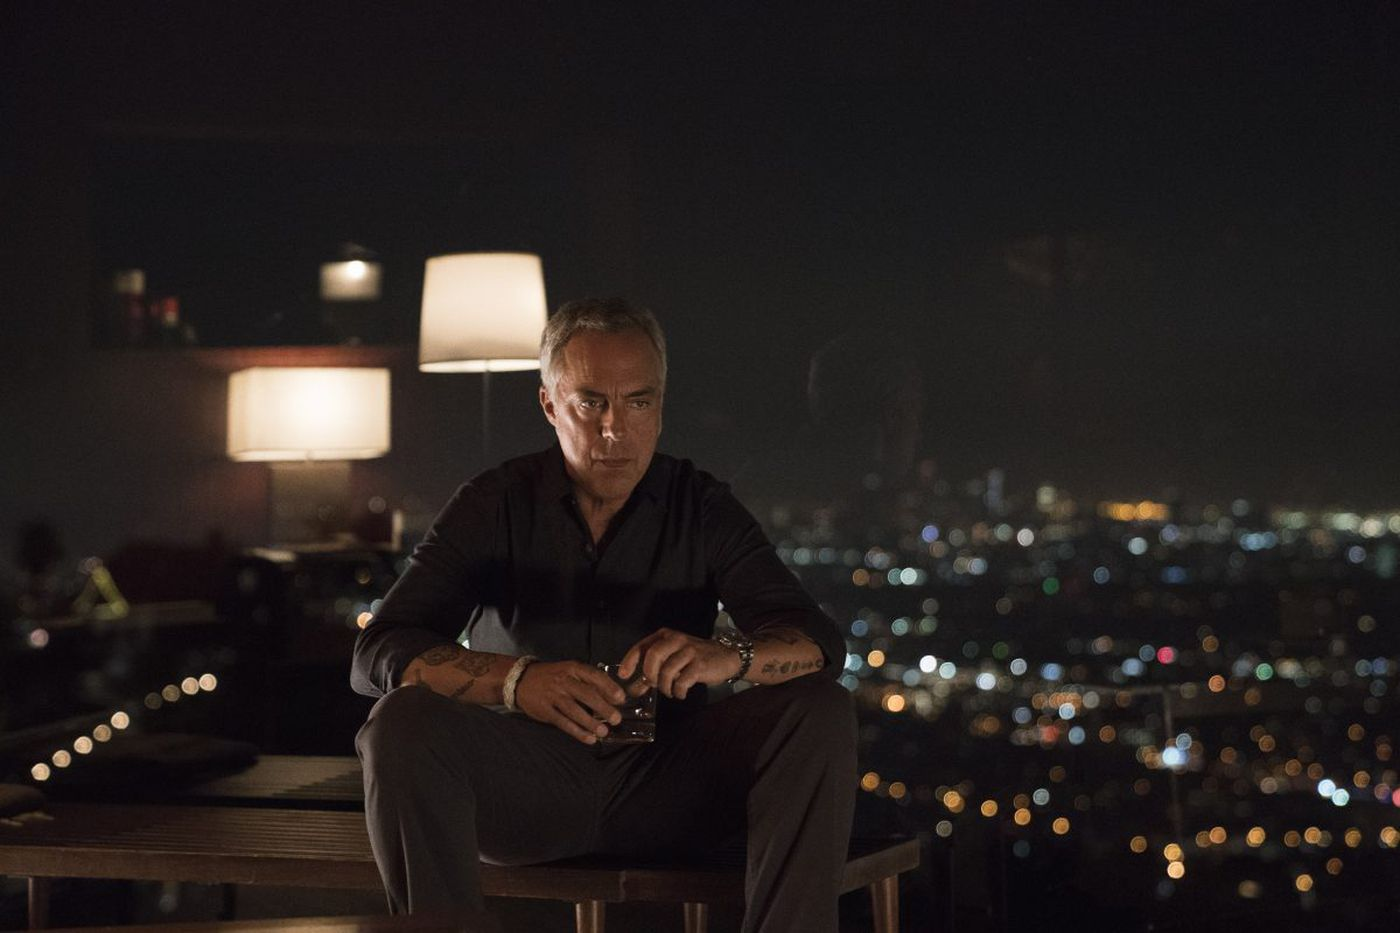 Philly's Titus Welliver gets 5th season as Amazon's 'Bosch'